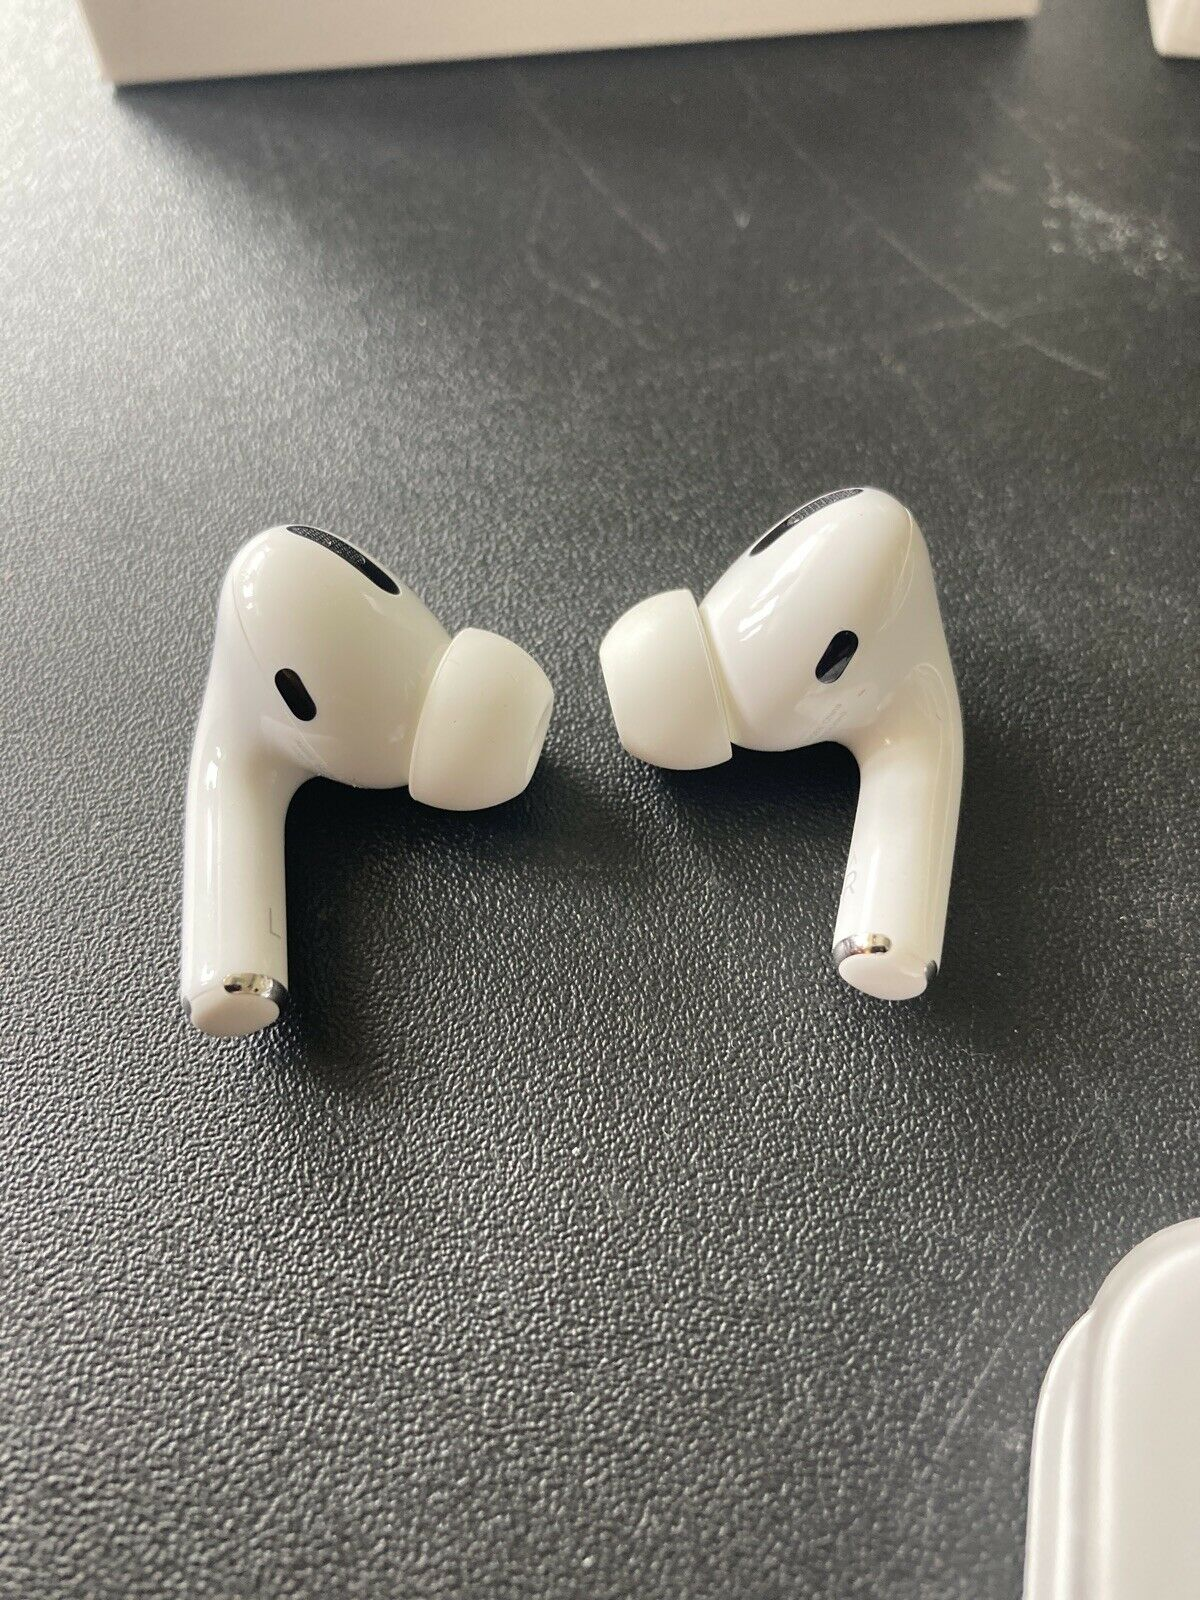 Apple AirPods Pro -Brand New - Open Box - Never Worn